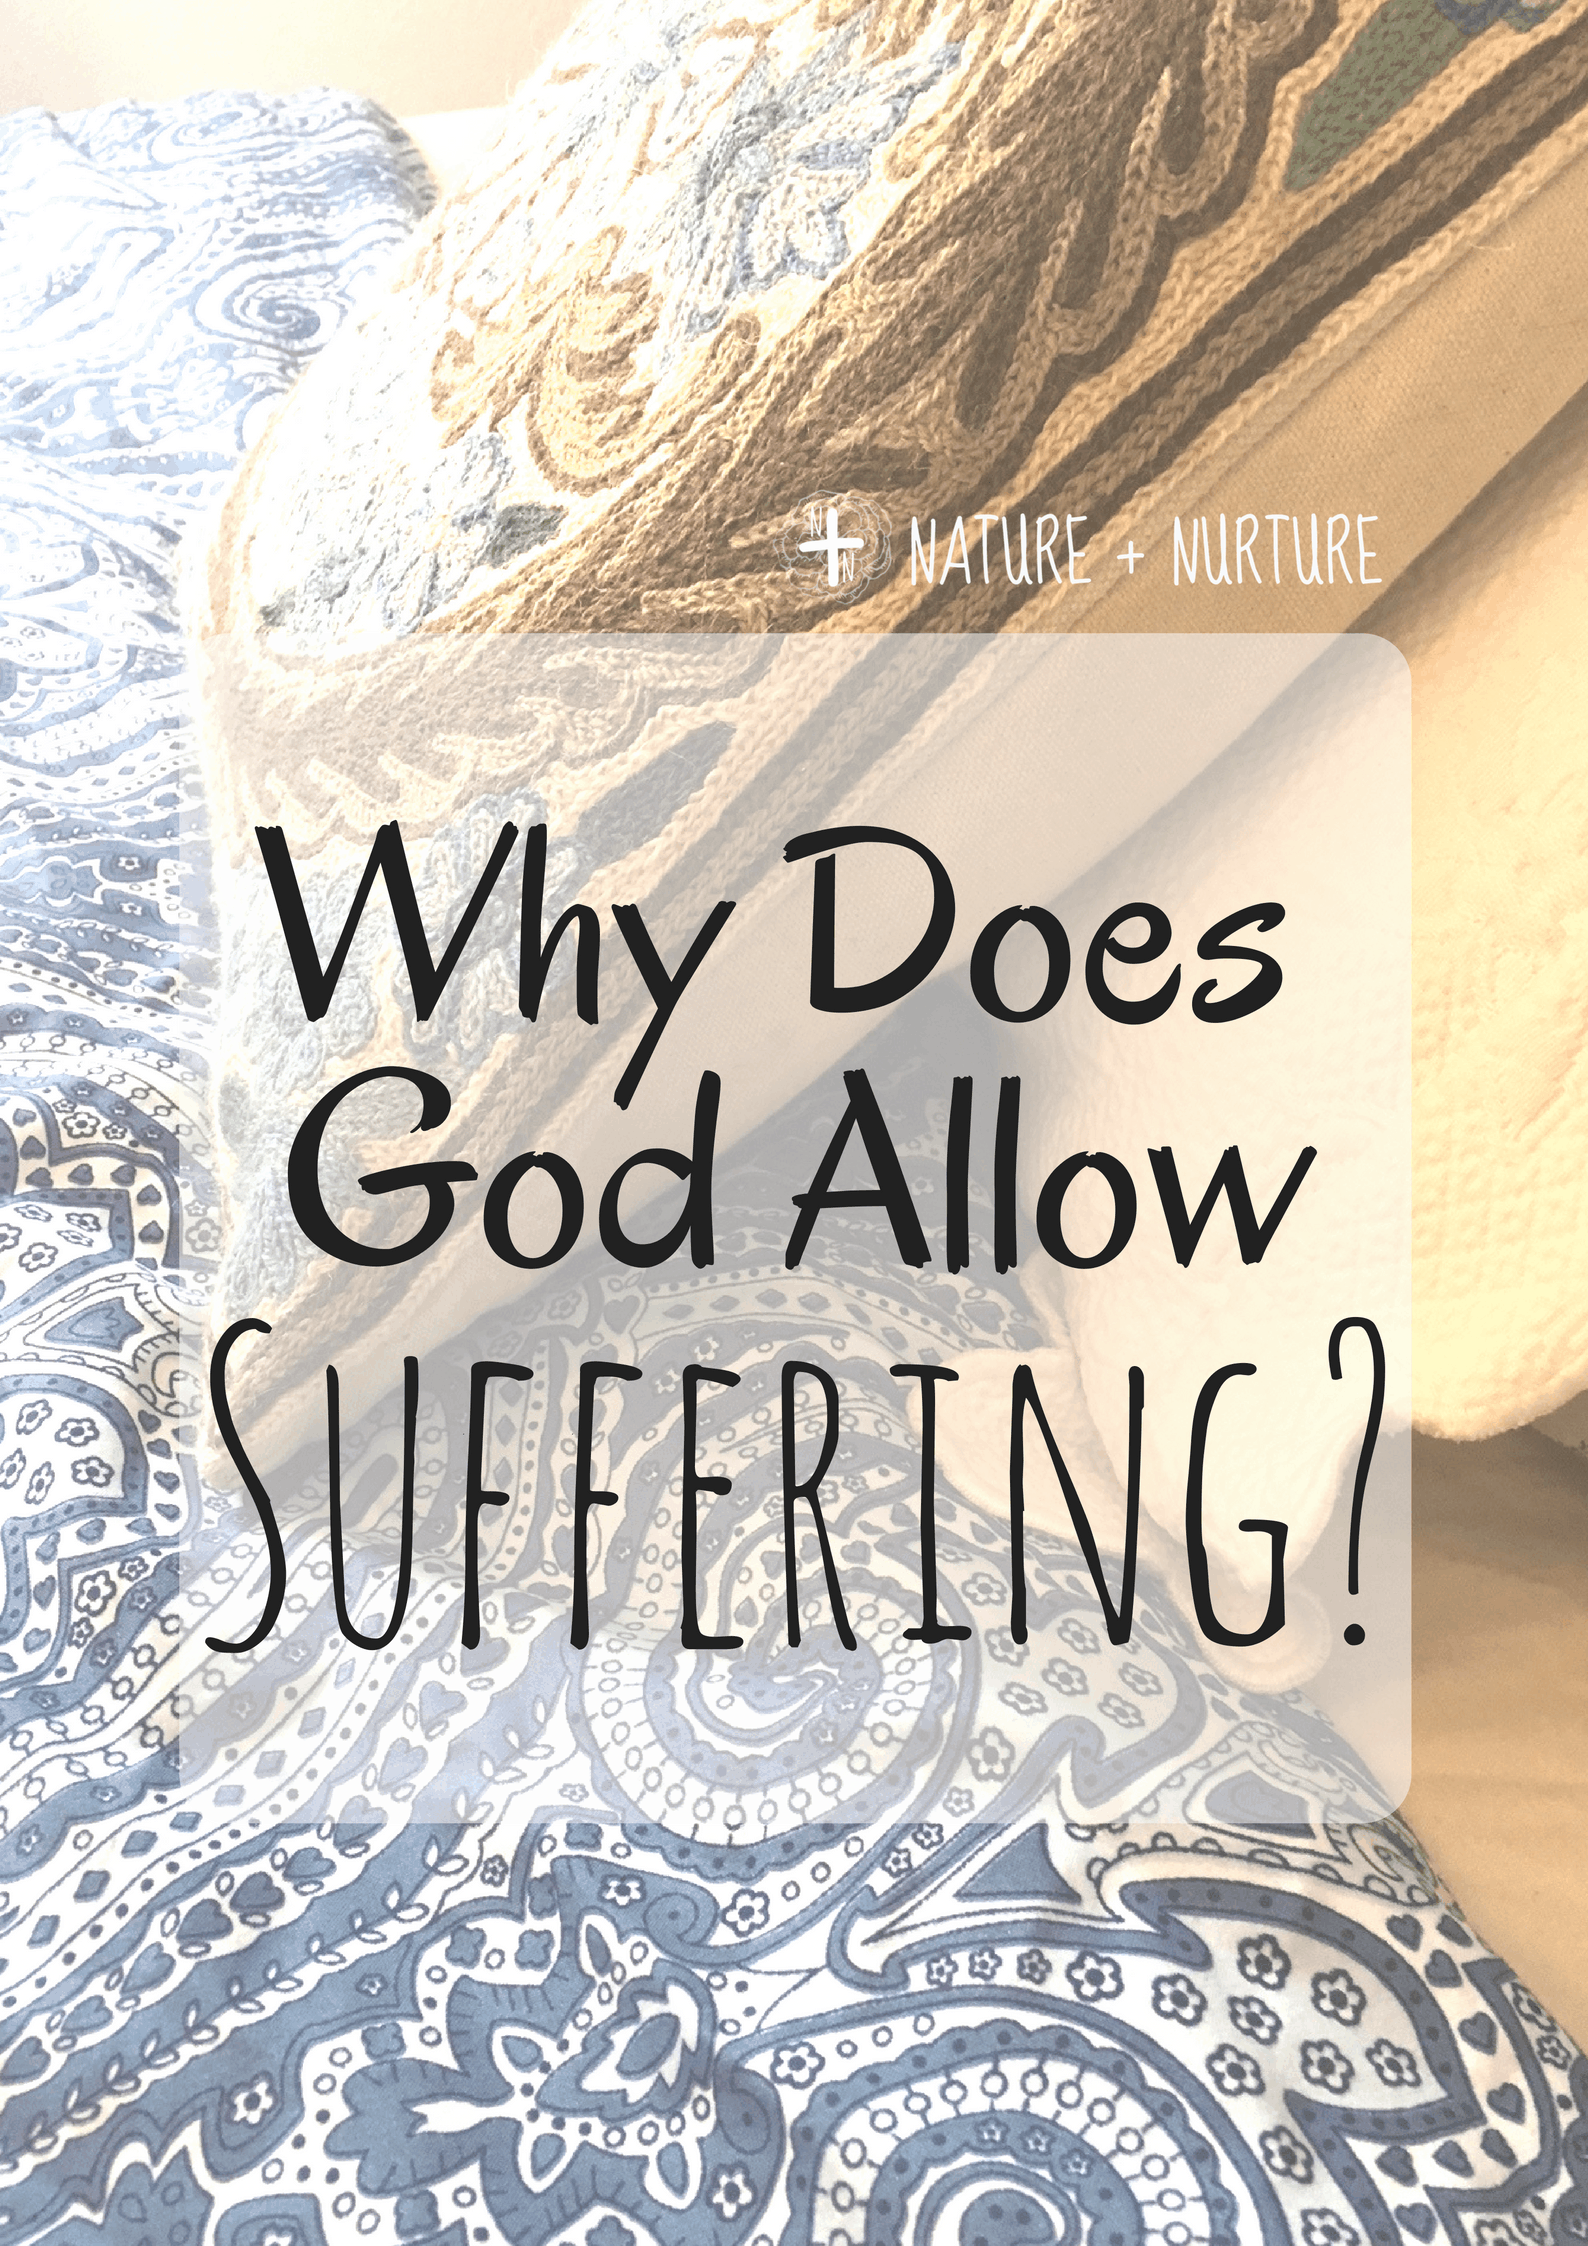 """Why do bad things happen, especially to good people? When suffering strikes, it's natural to ask """"why?"""" Here are a few points to consider."""